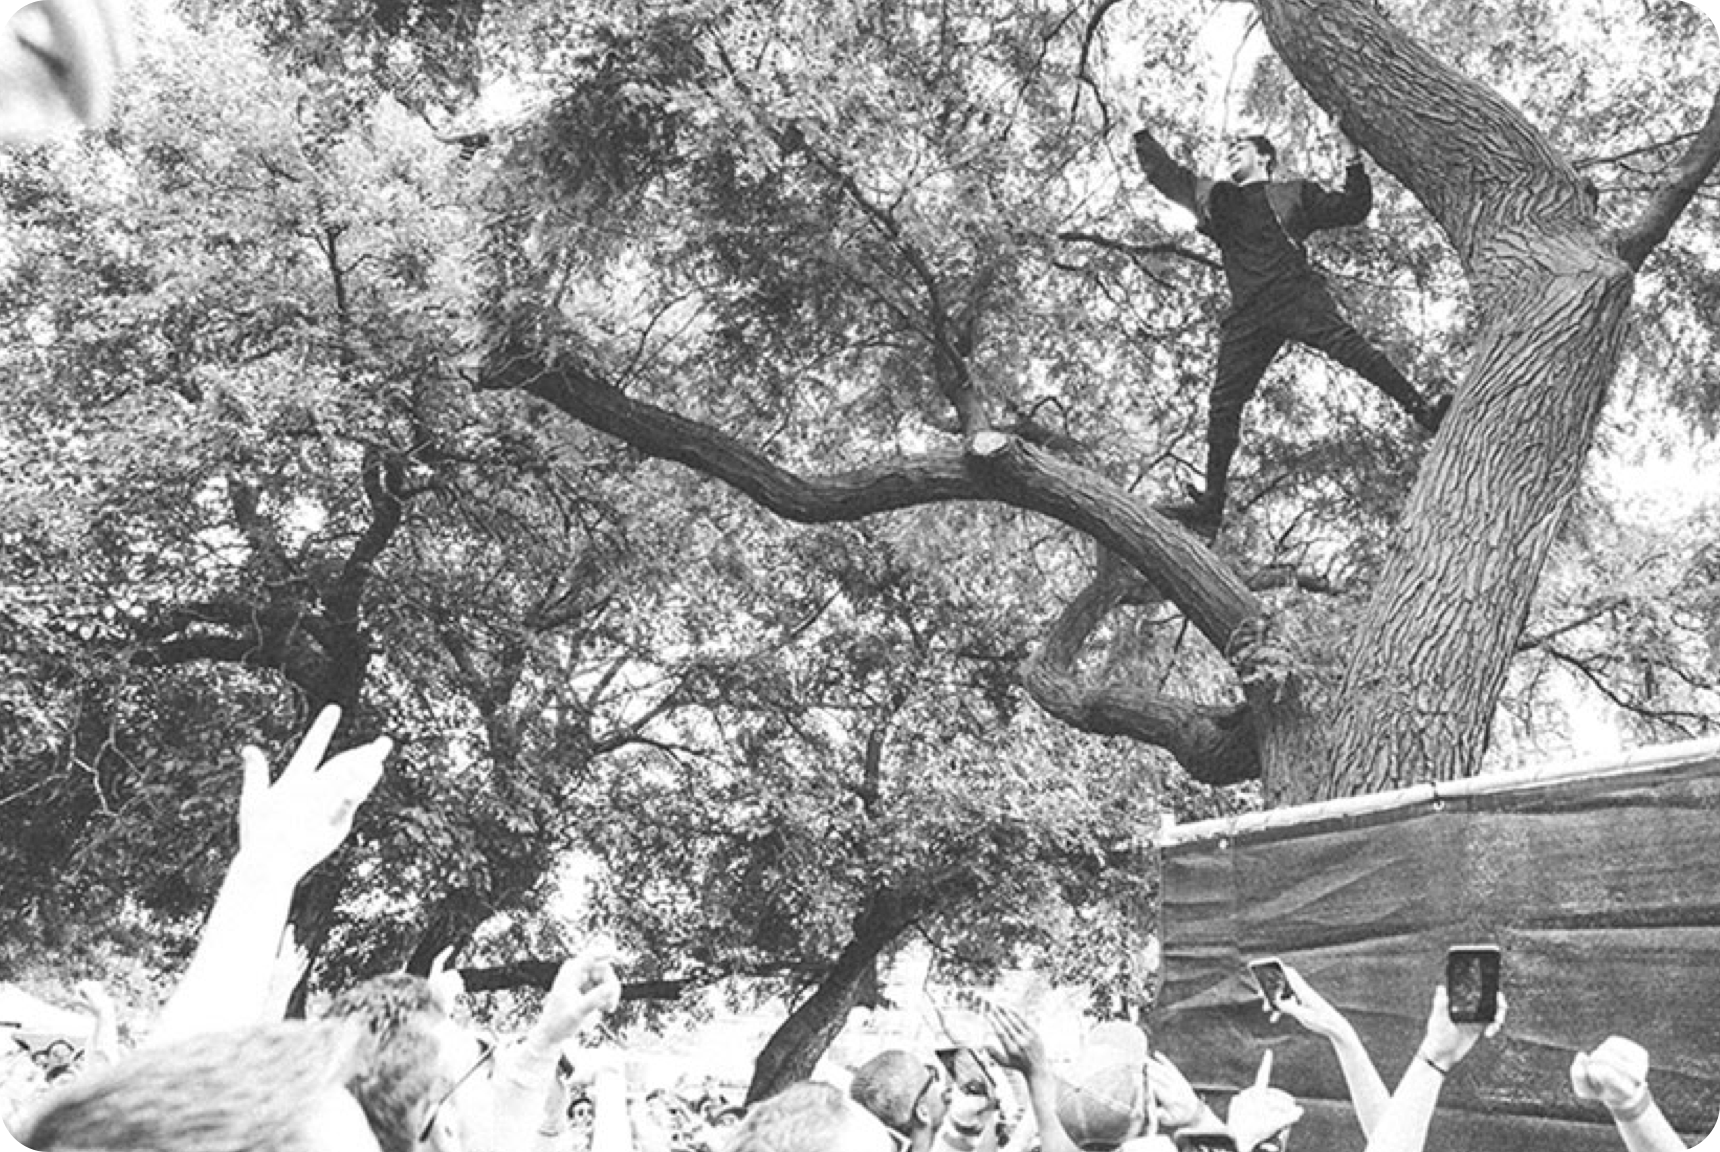 Upward view of a man standing in a tree while looking upon a crowd